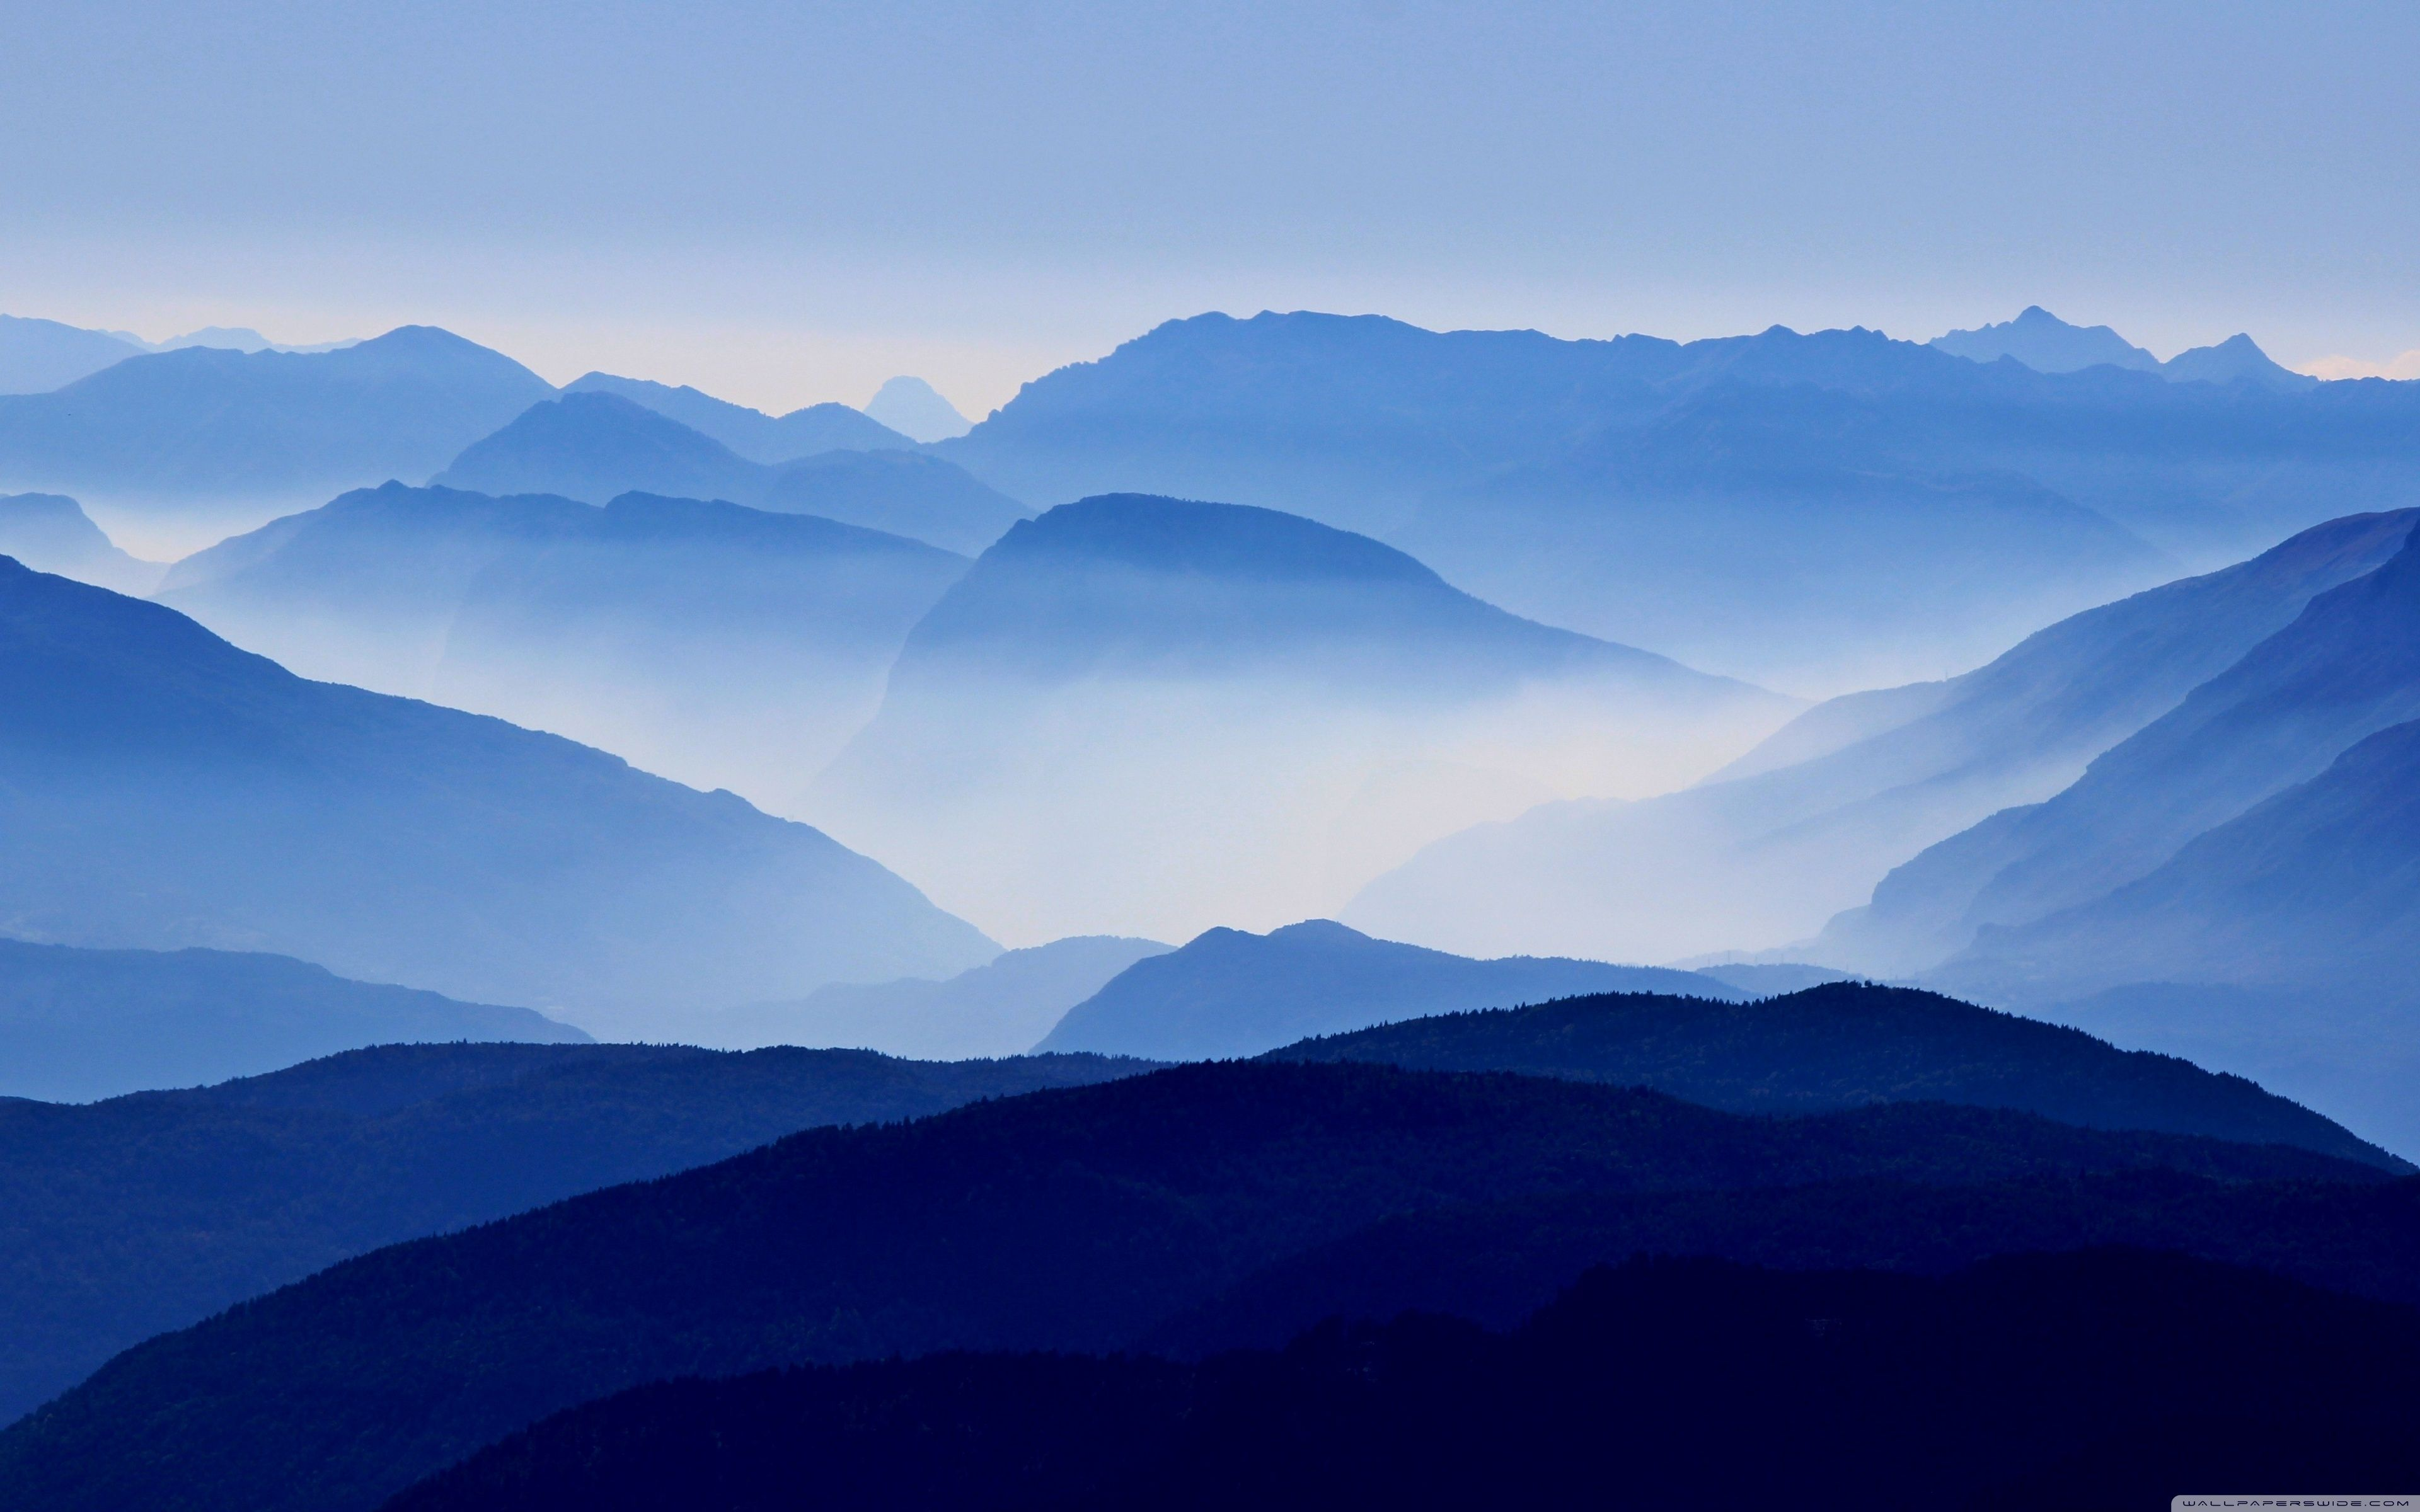 Blue Mountain Wallpapers Top Free Blue Mountain Backgrounds Wallpaperaccess